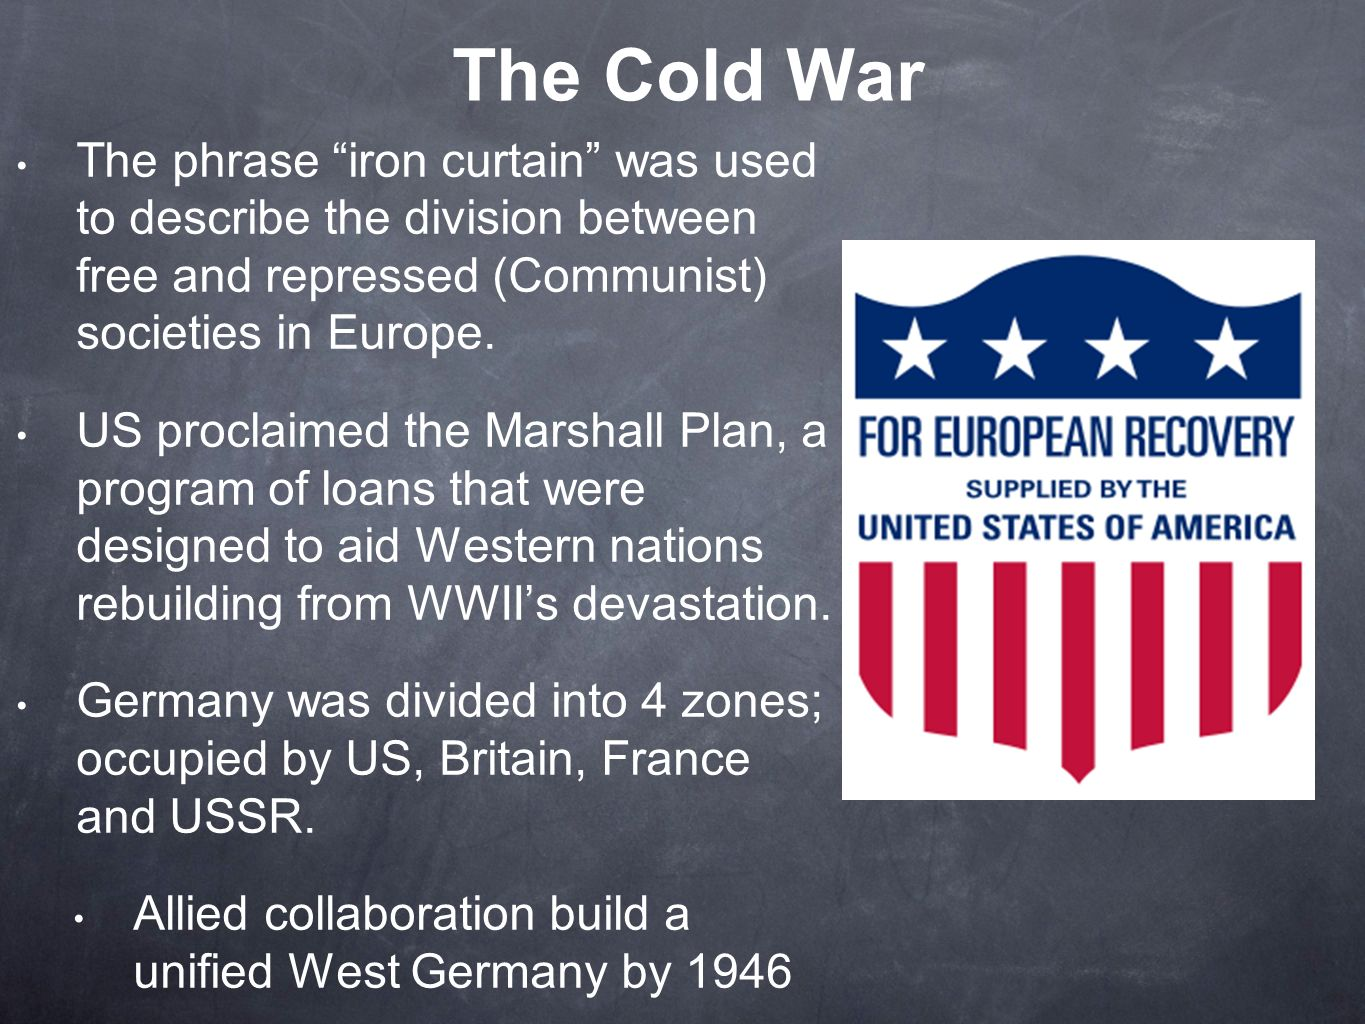 Chapter 31 western society and eastern europe in the - The marshall plan was designed to ...